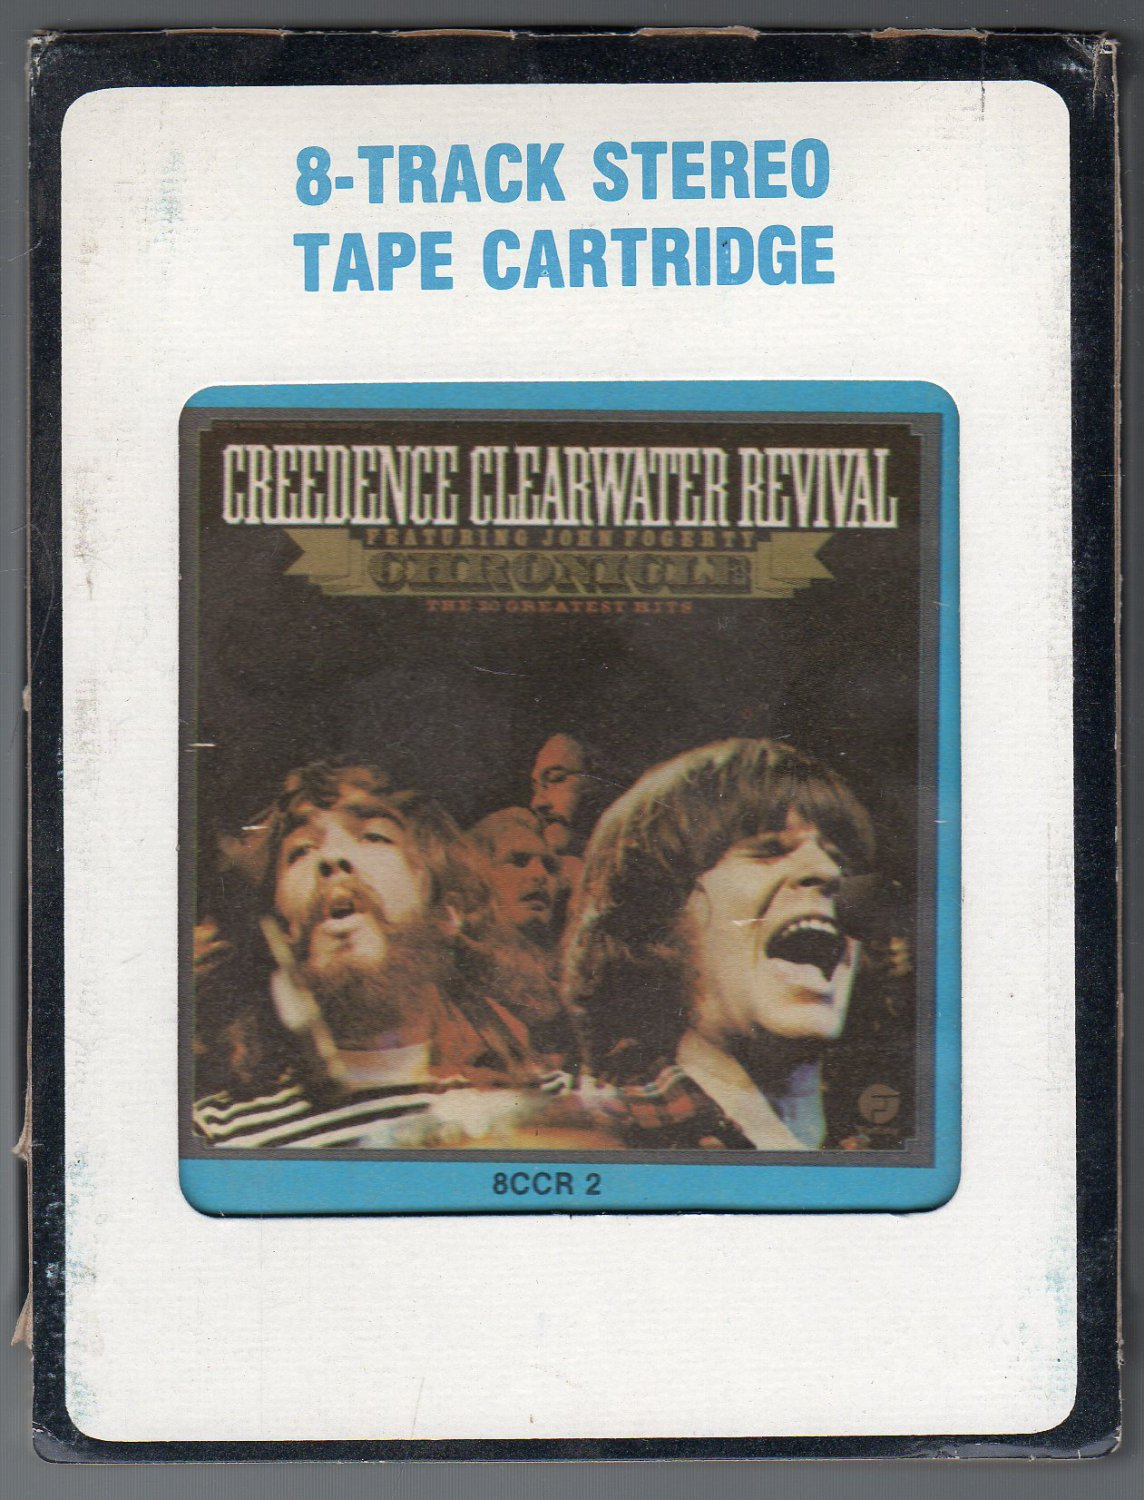 Creedence clearwater revival chronicle crc t3 8 track tape for Ab salon equipment clearwater fl